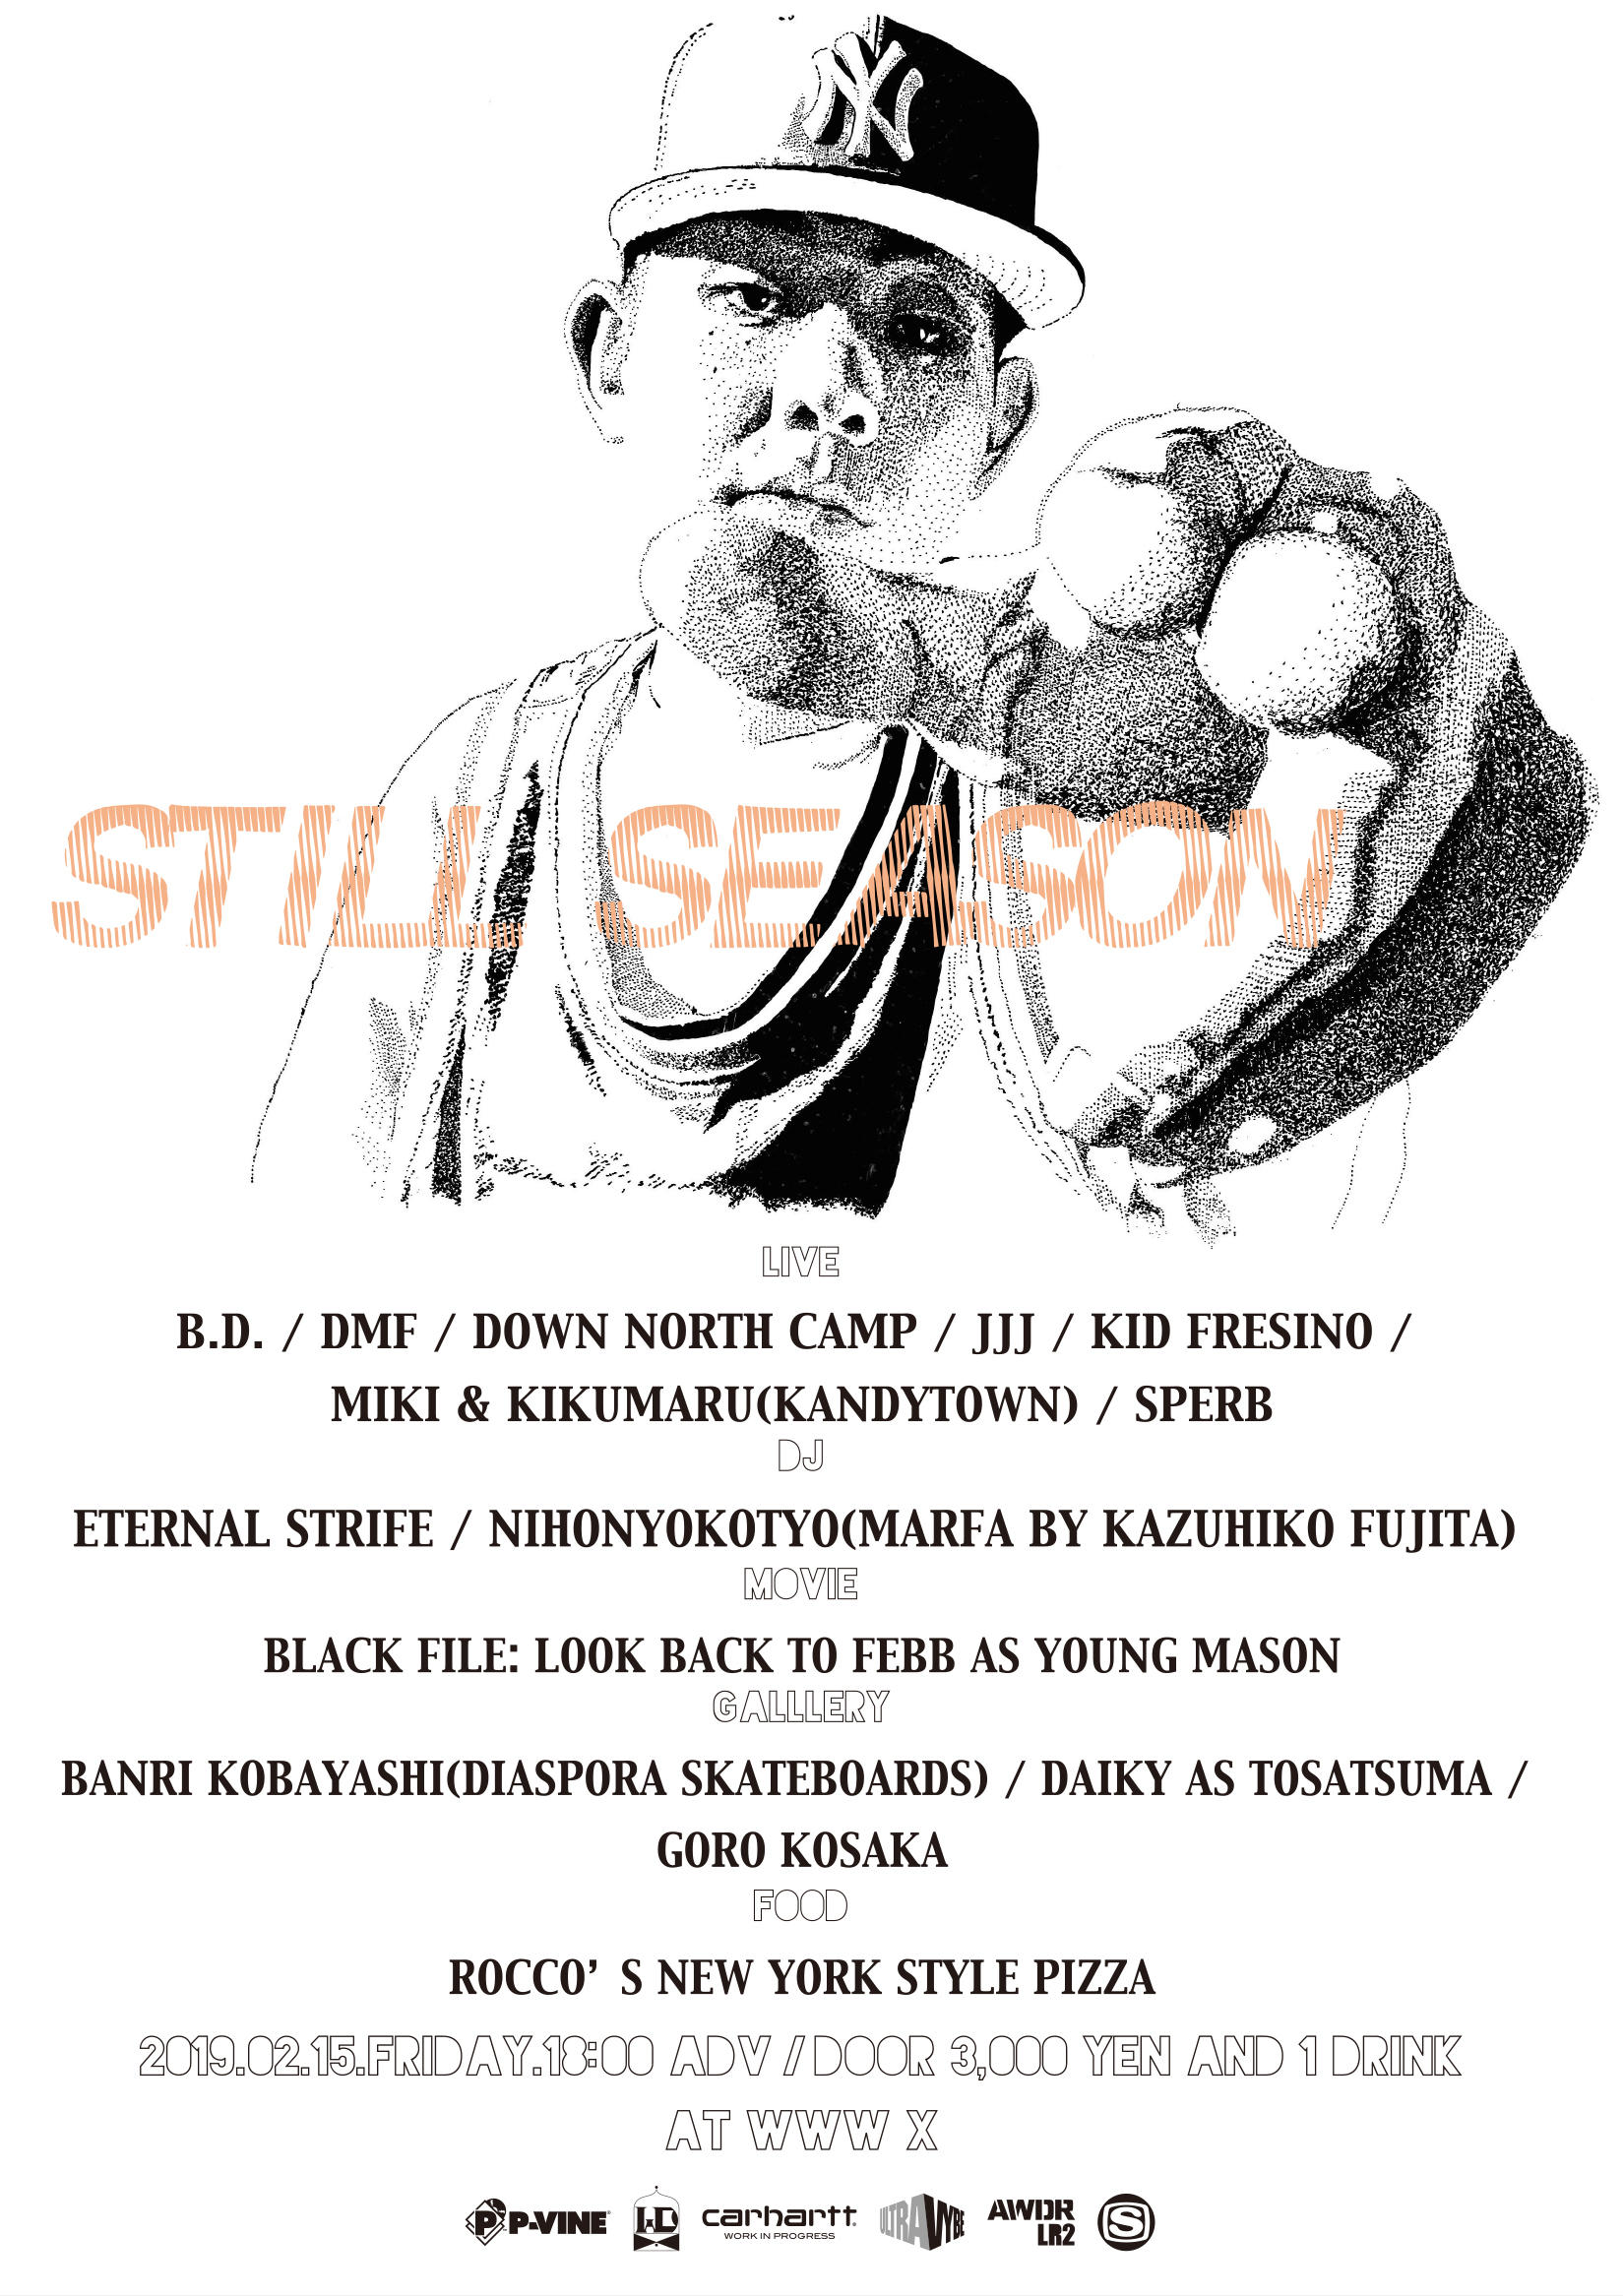 [LIVE] B.D. / DMF / DOWN NORTH CAMP / JJJ / KID FRESINO / MIKI&KIKUMARU(KANDYTOWN) / SPERB / [DJ] ETERNAL STRIFE / 日本横町 (Marfa by Kazuhiko Fujita) / [上映] Black File : look back to FEBB AS YOUNG MASON